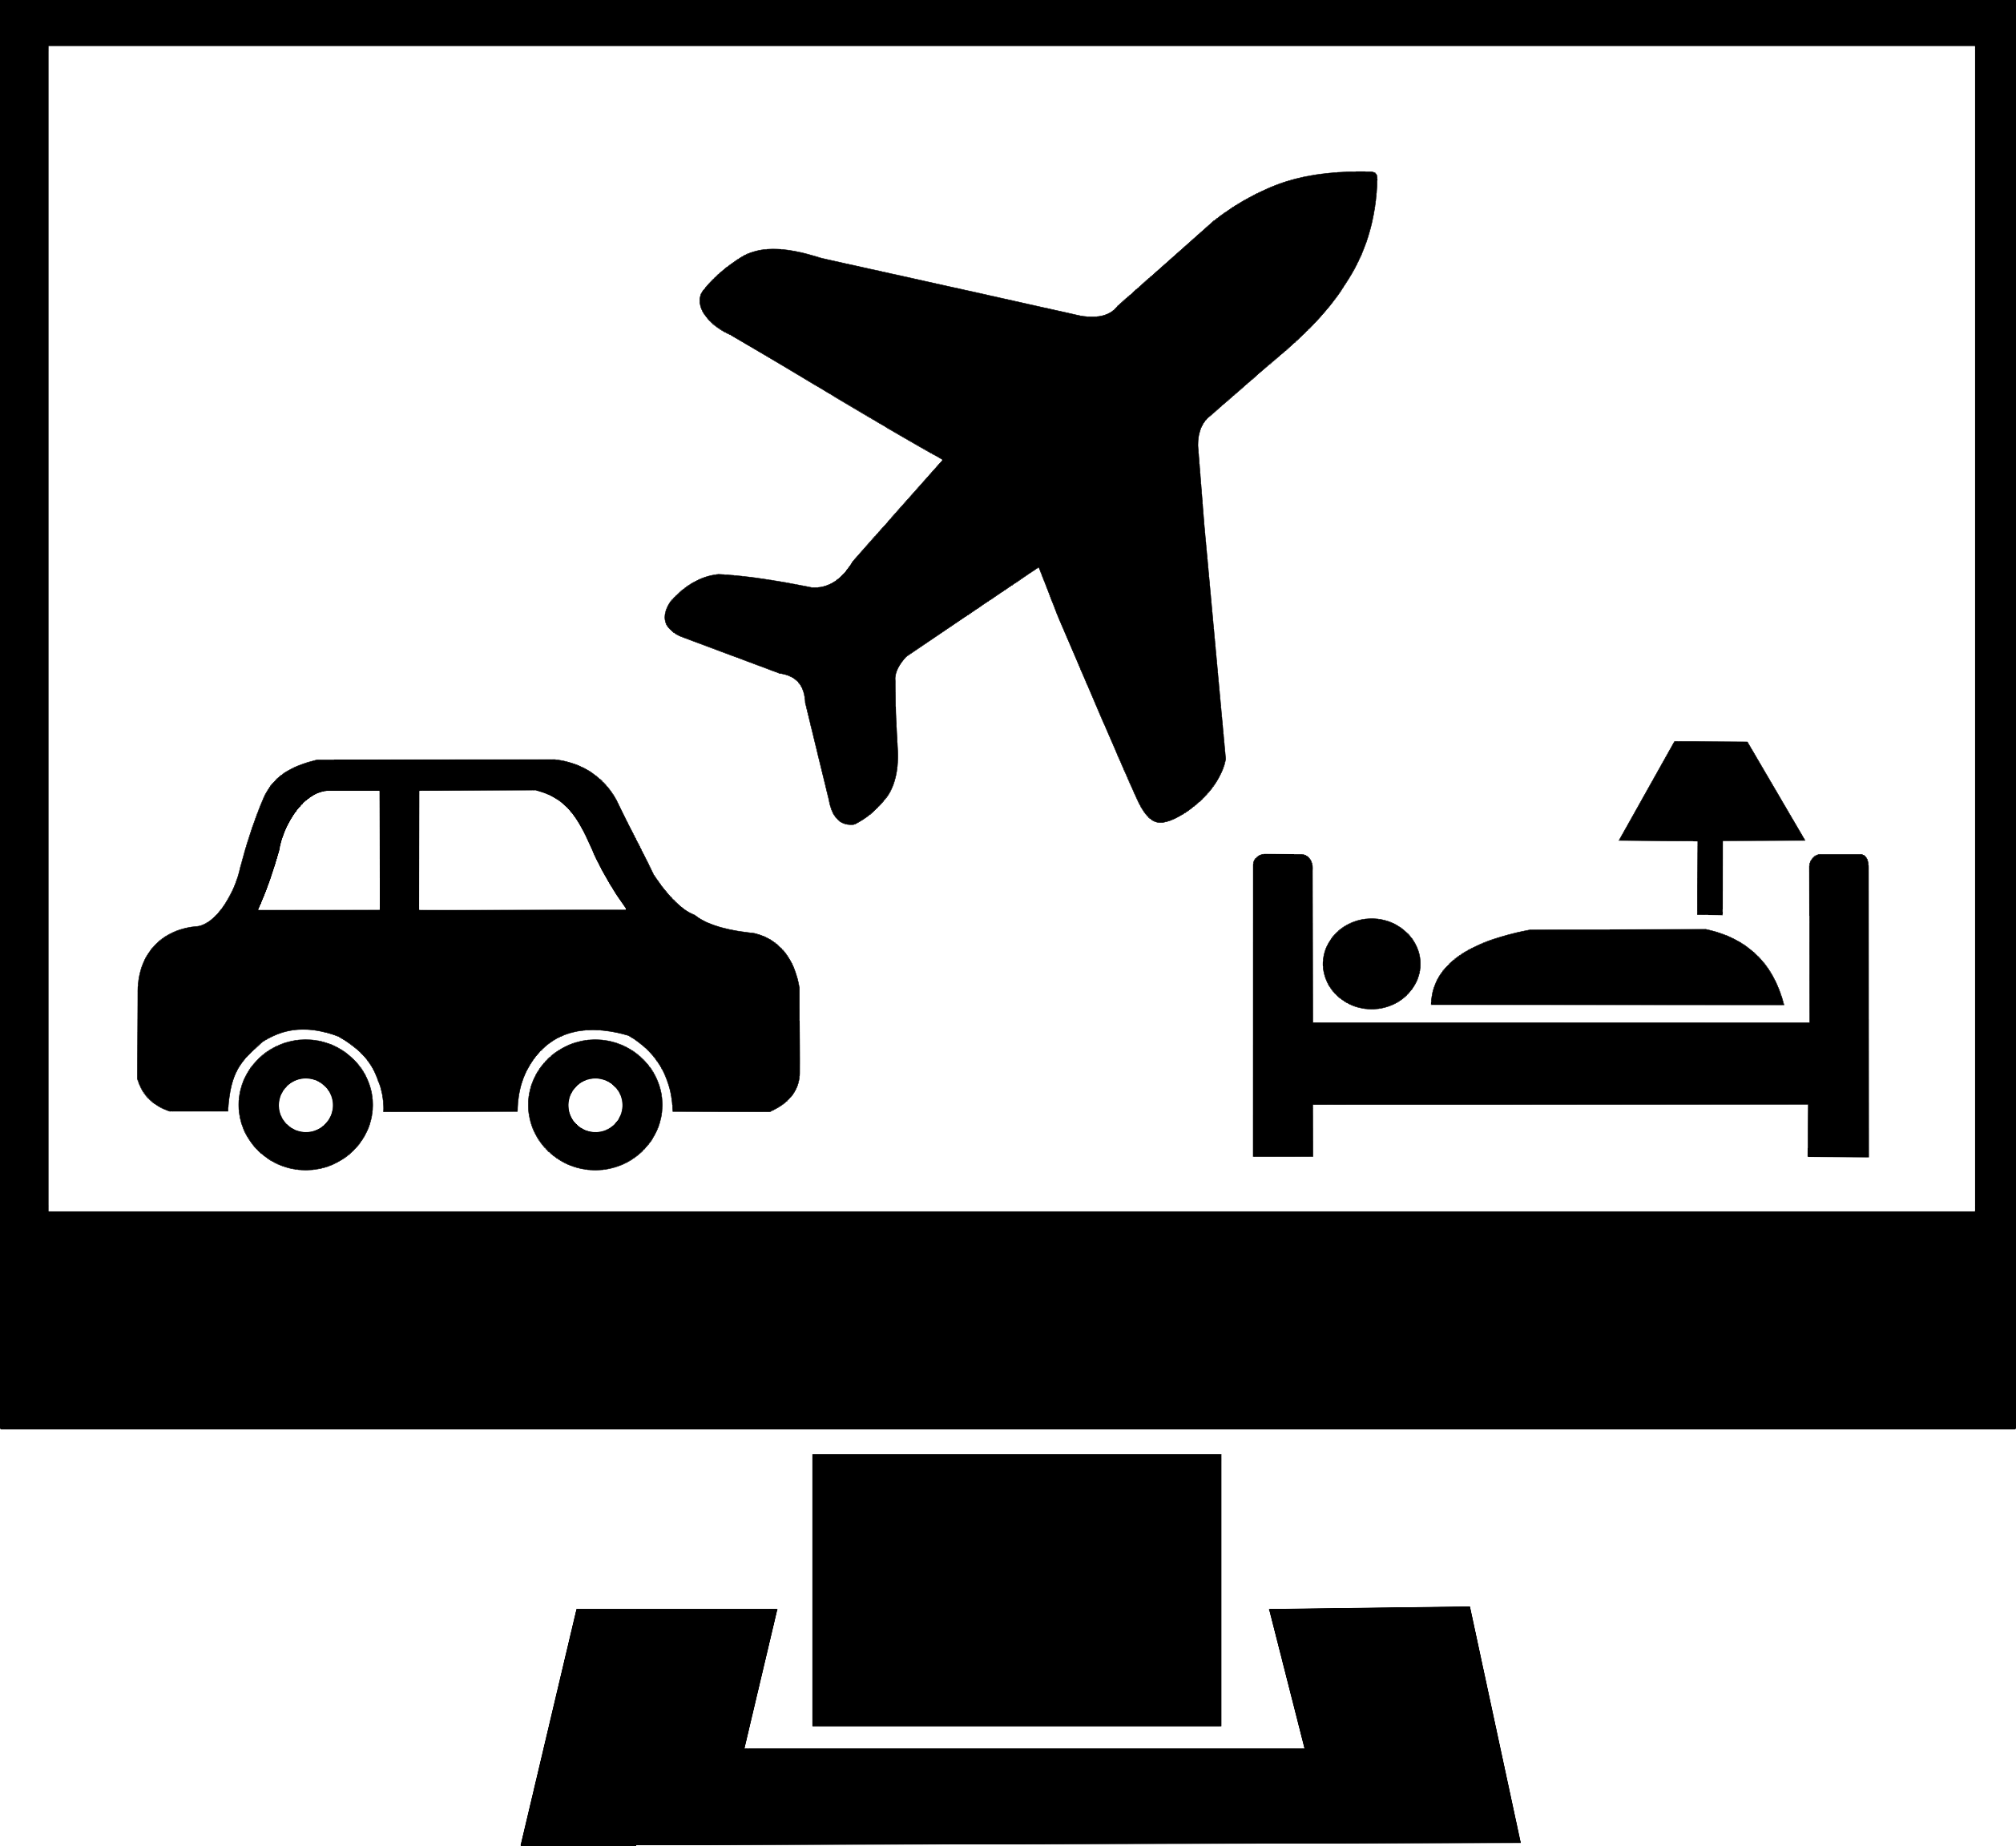 Car travel clipart picture free travel template picture free